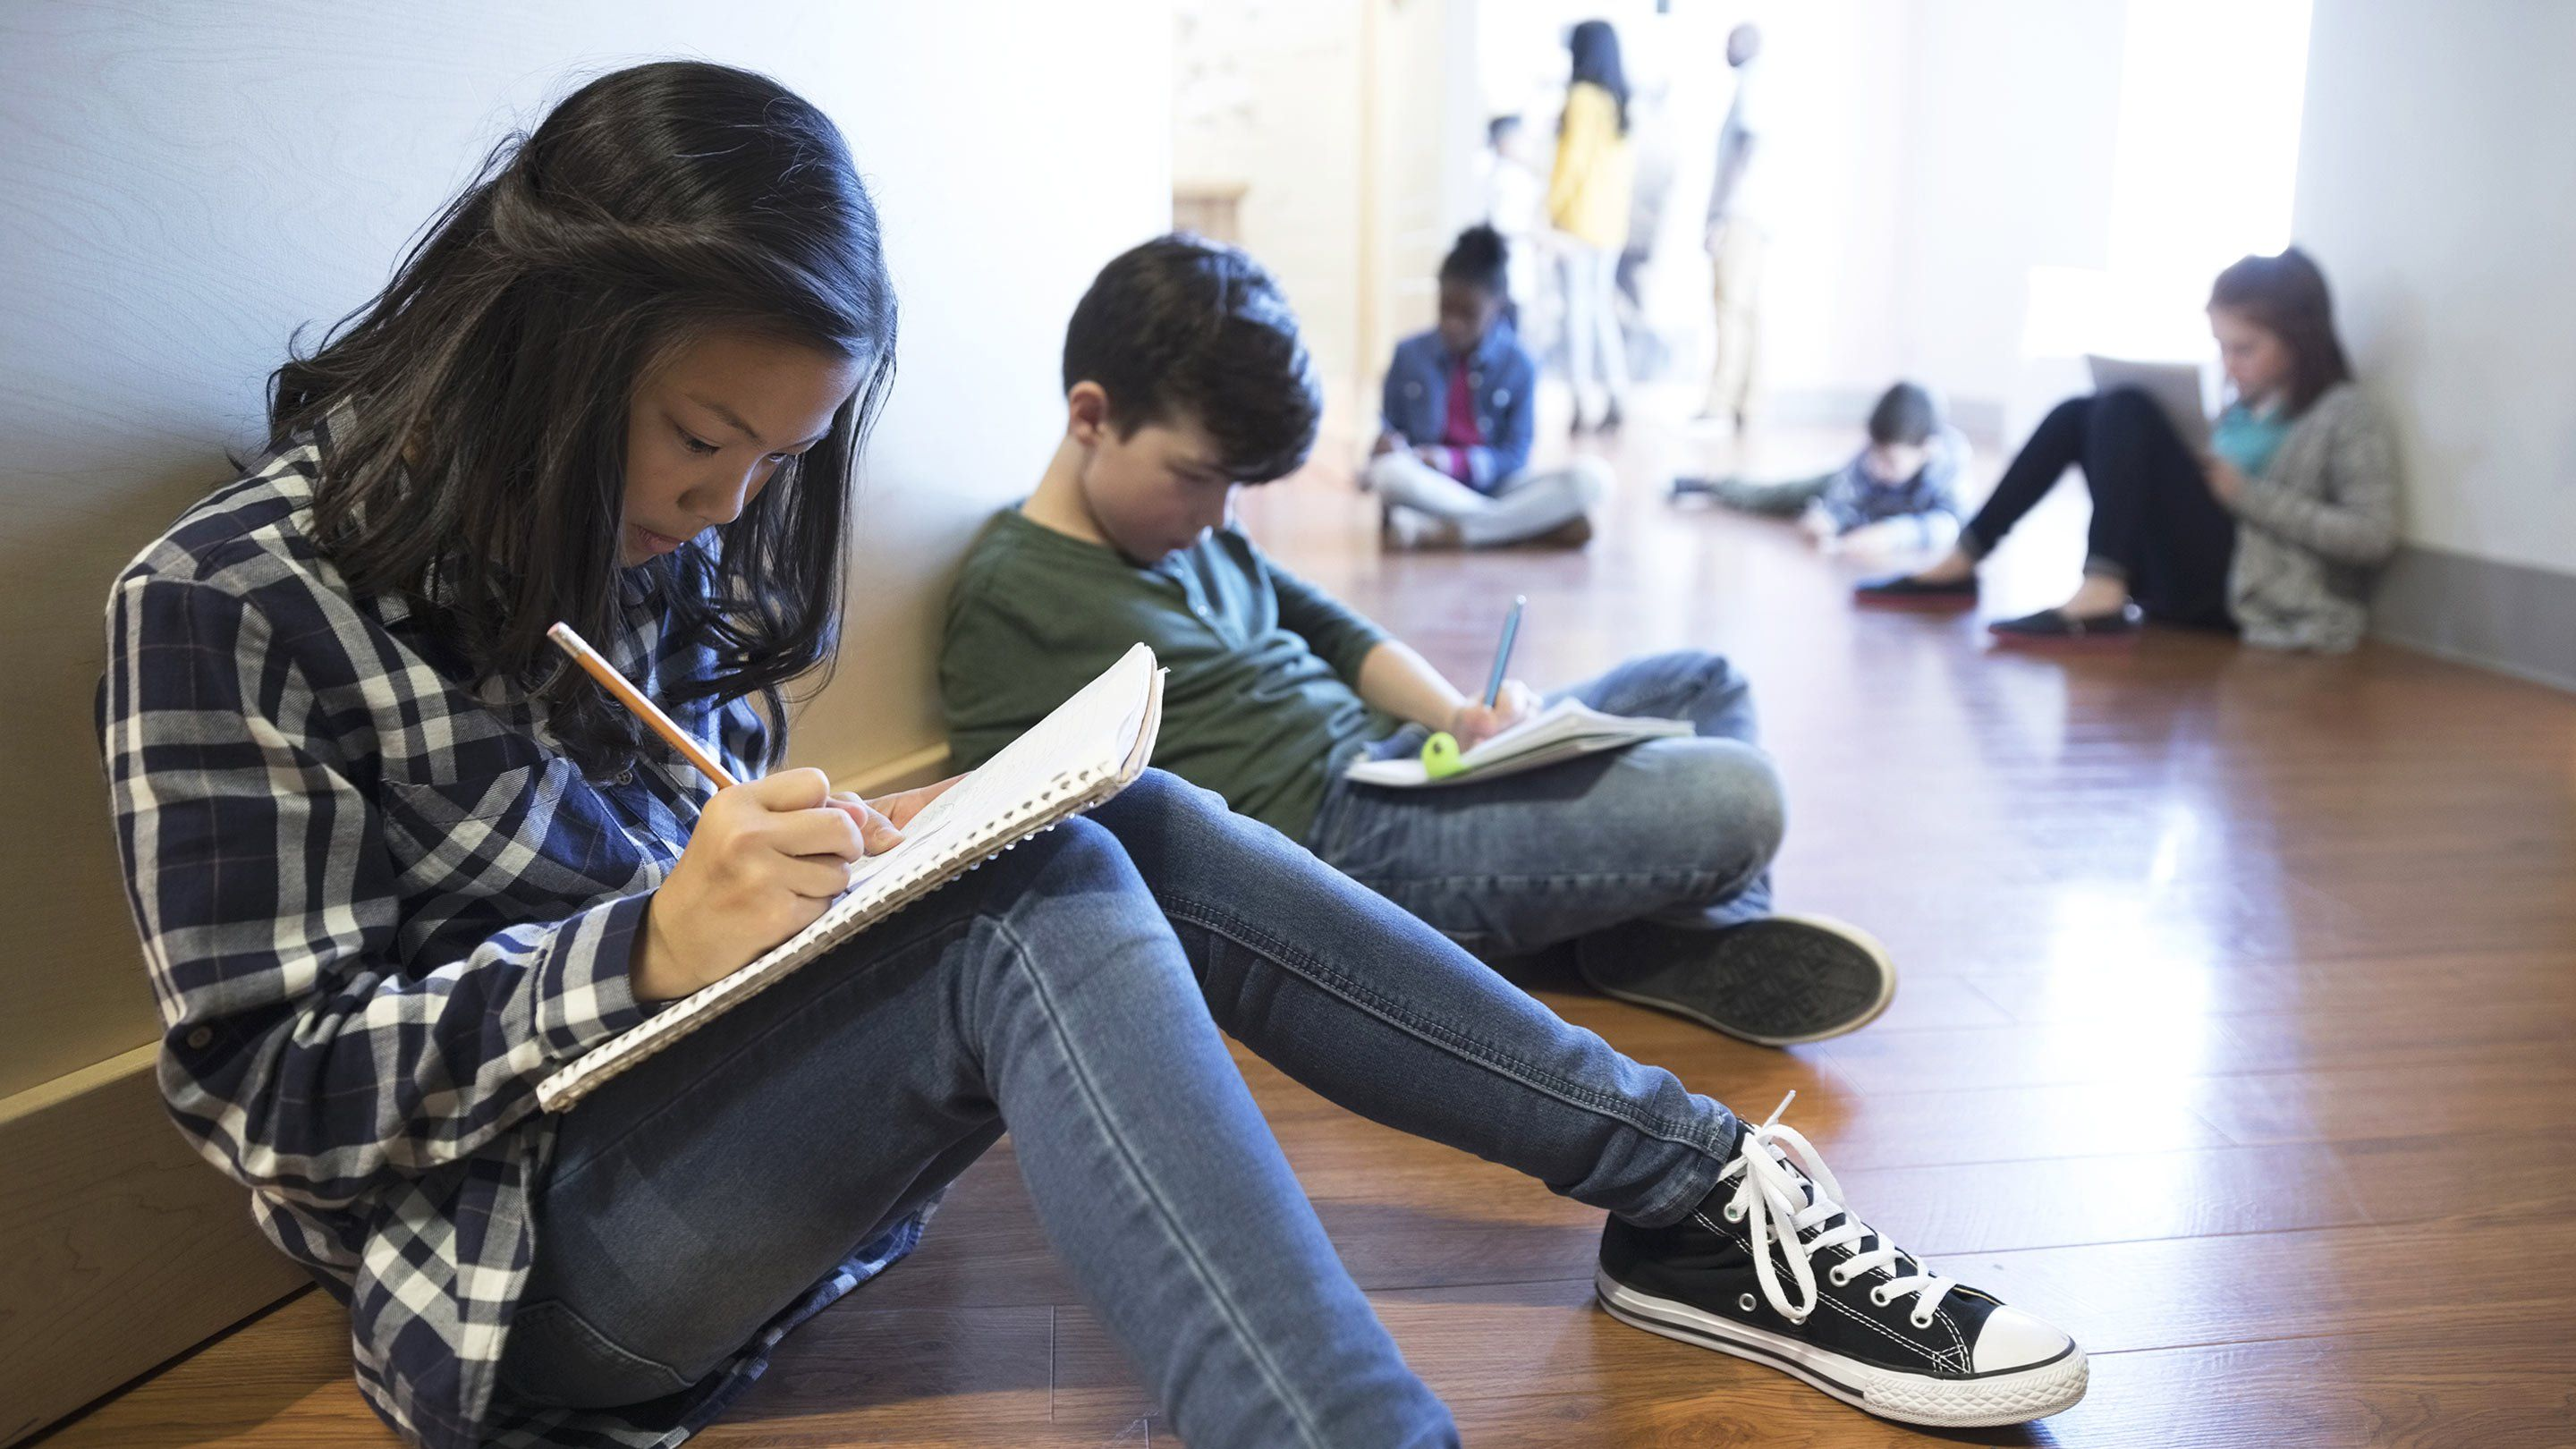 students work independently while sitting in a school hallway